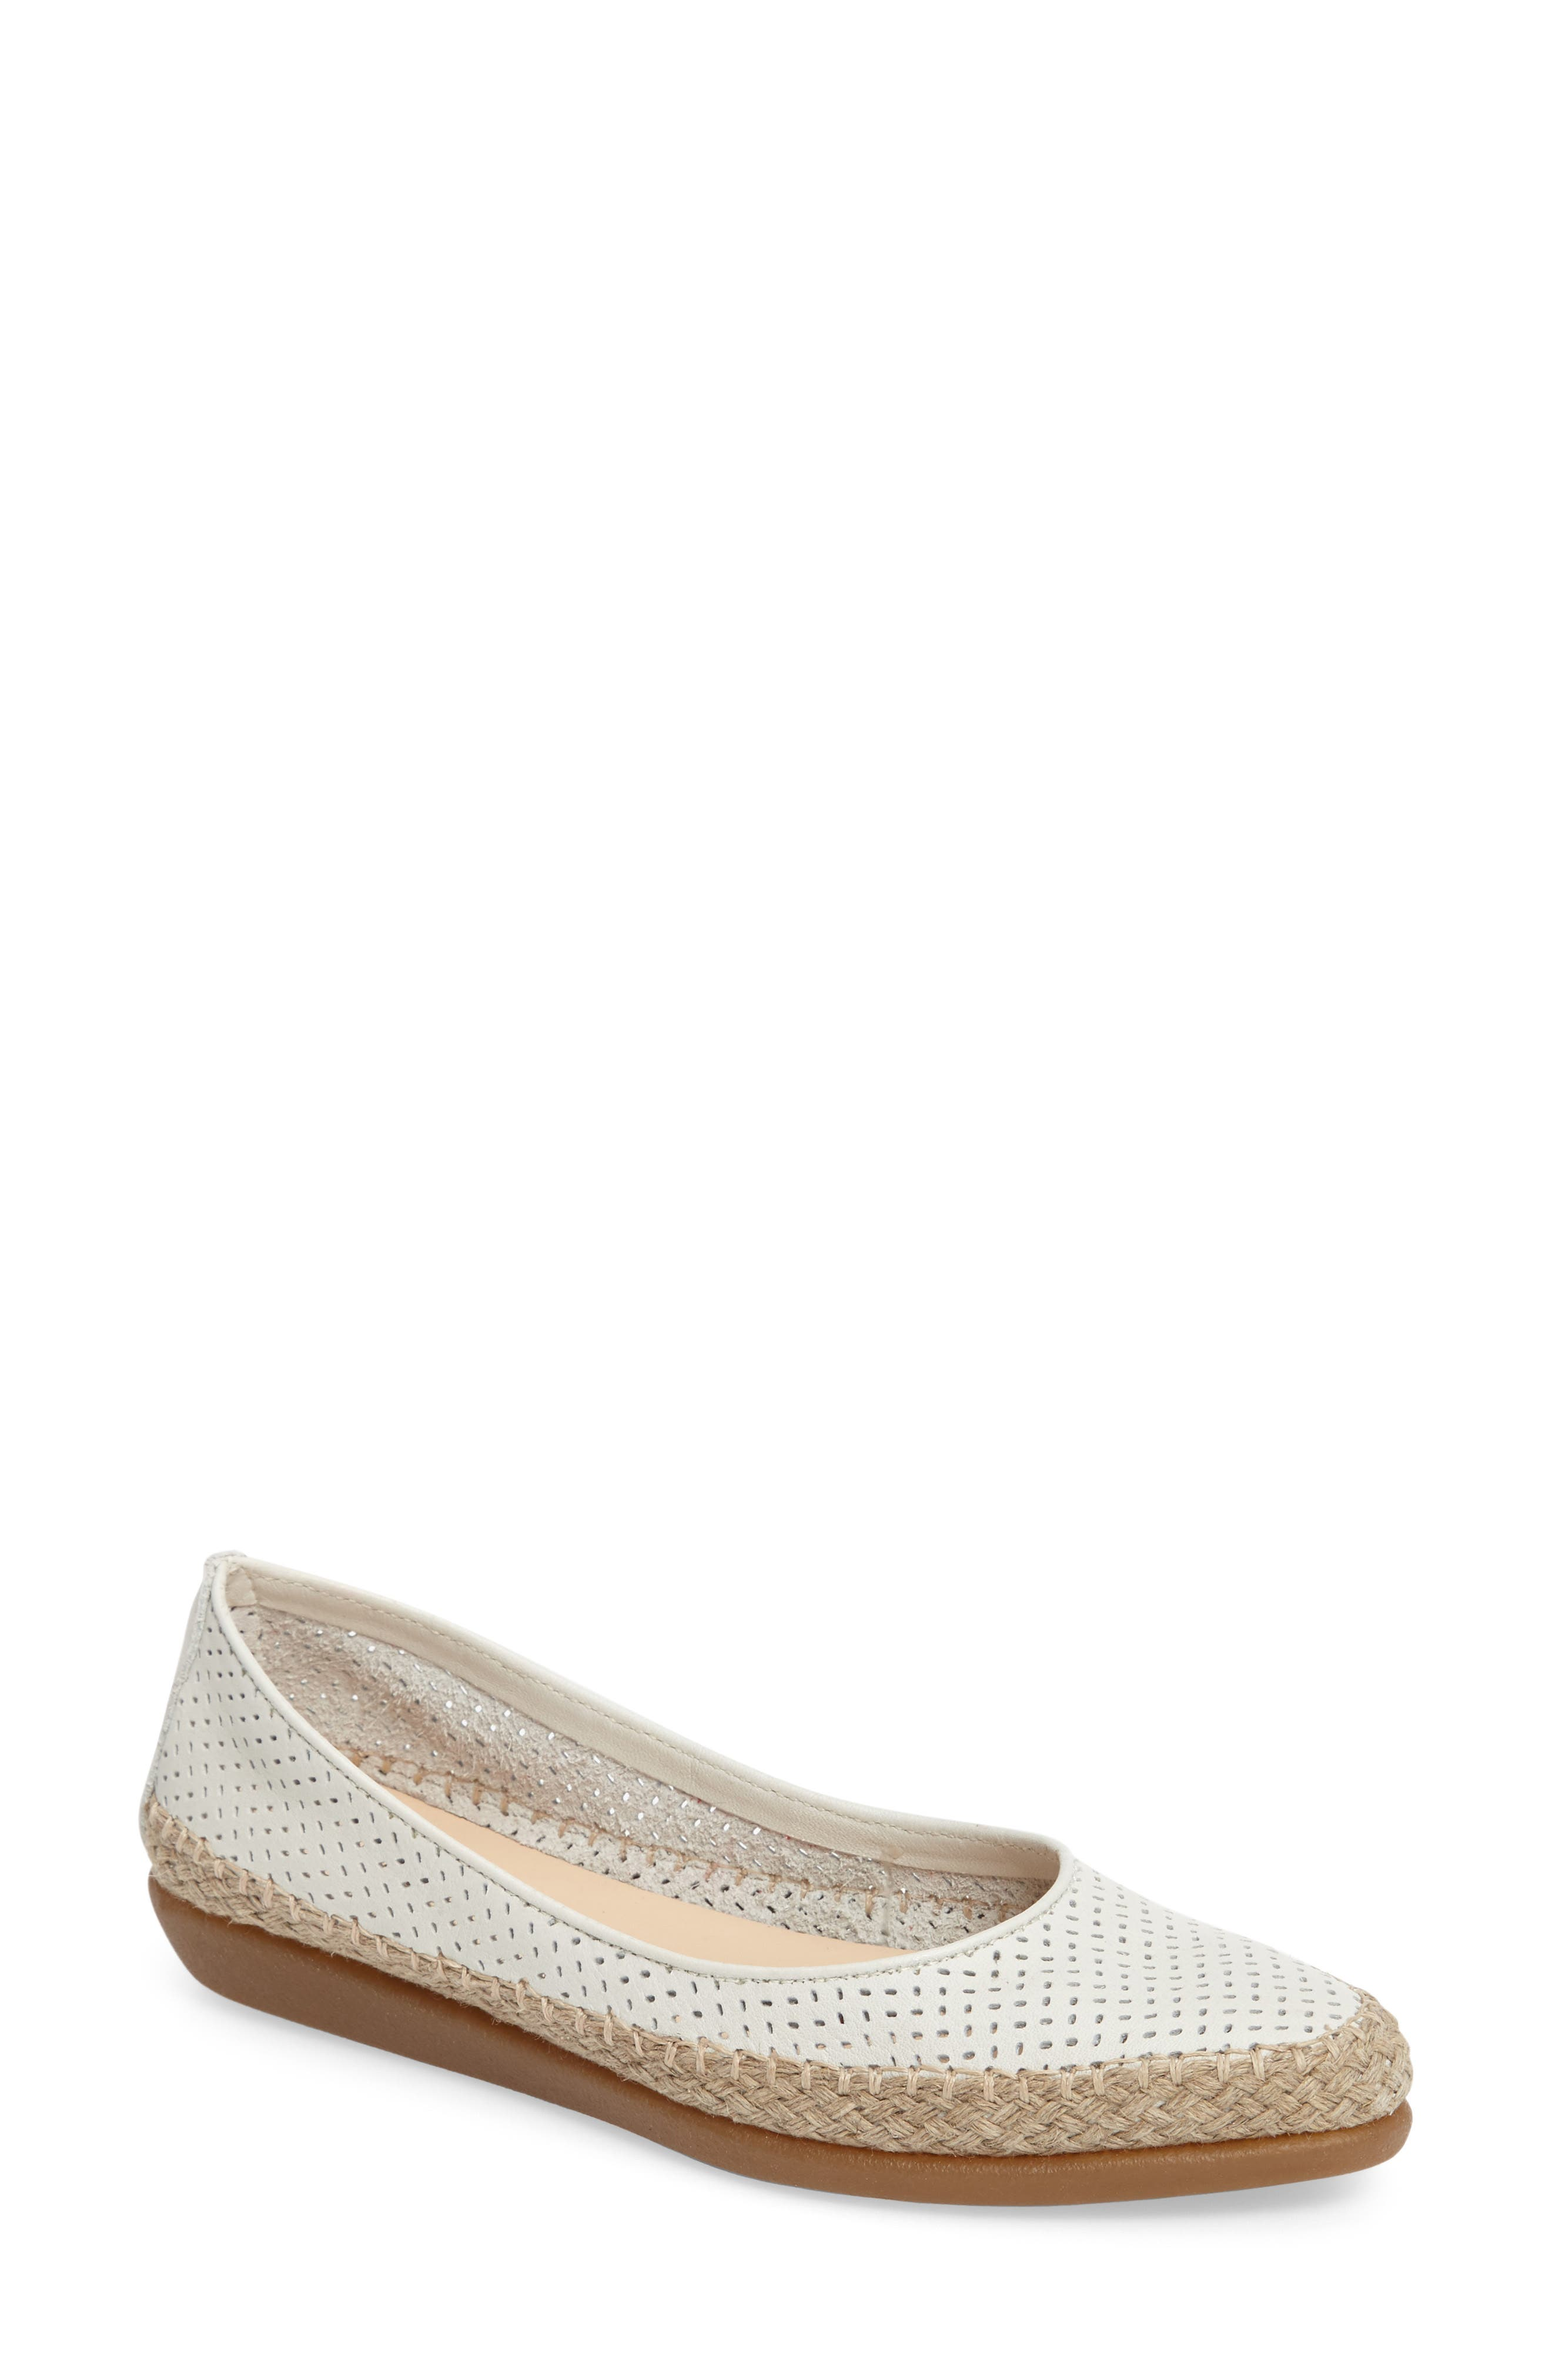 The FLEXX 'Torri' Perforated Espadrille Flat